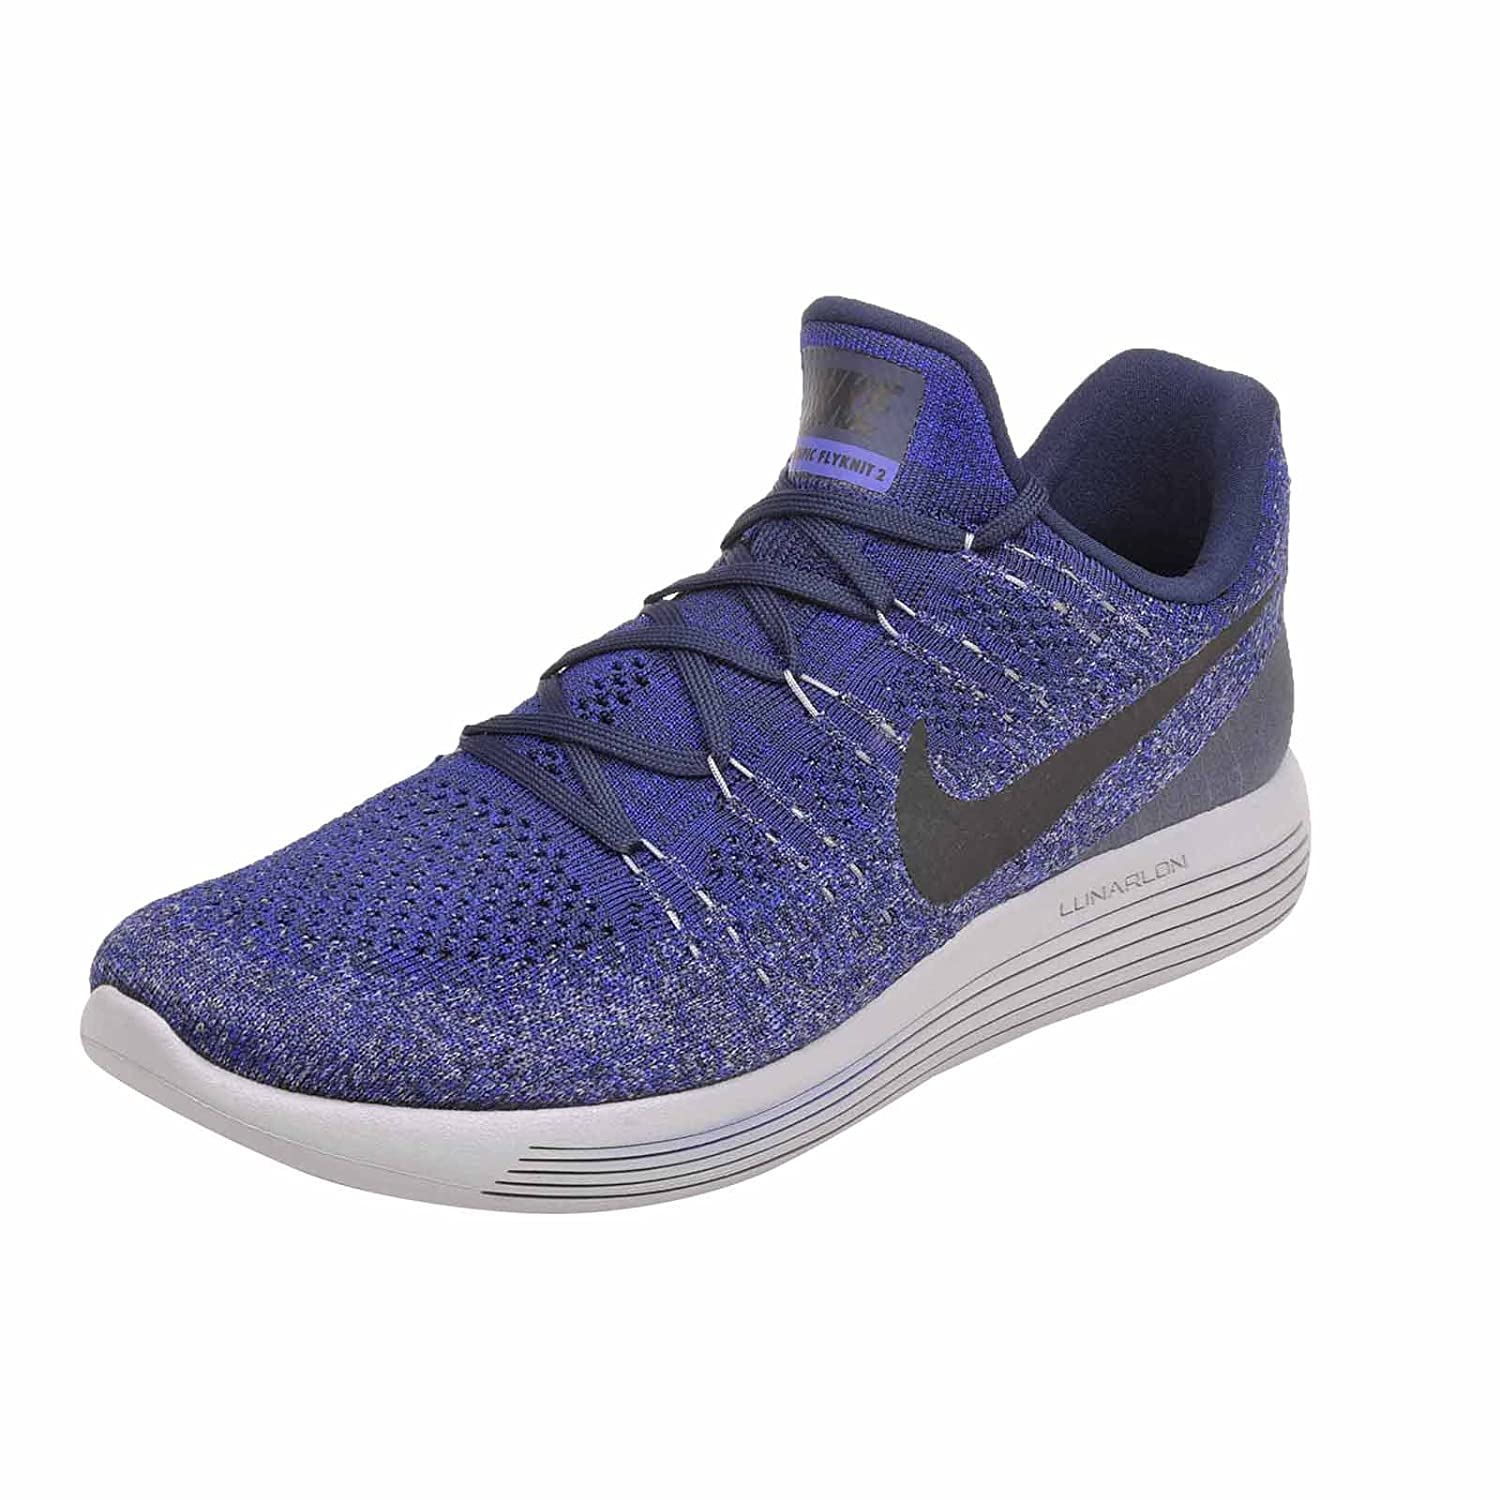 d2d969ad48f8 Nike Lunarepic Low Flyknit 2 College Navy Black Concord (Size 13)  Buy  Online at Low Prices in India - Amazon.in